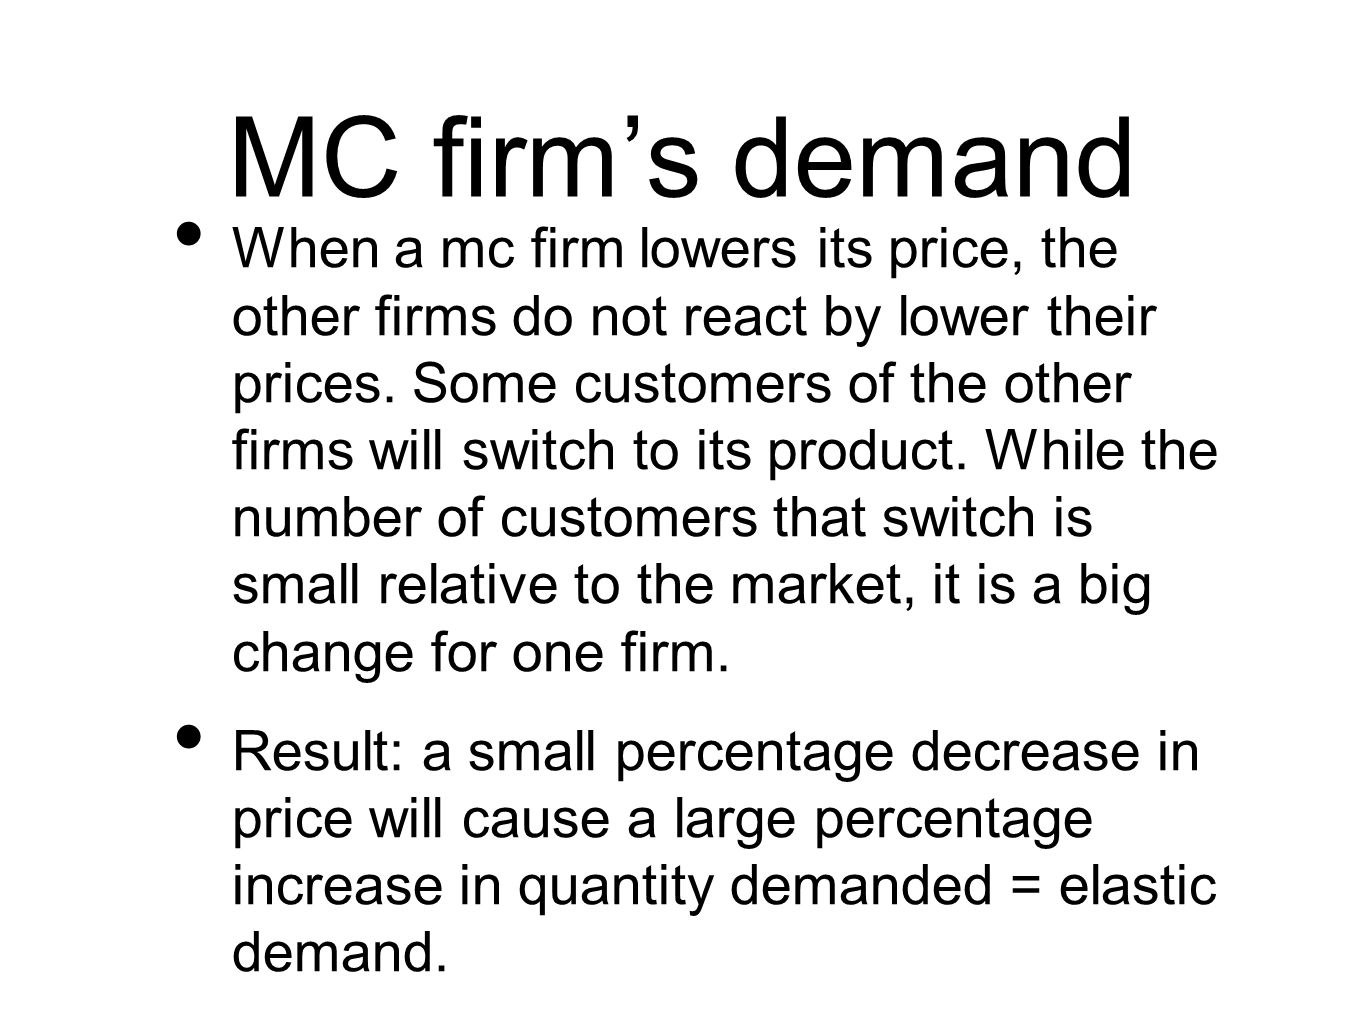 MC firm's demand When a mc firm lowers its price, the other firms do not react by lower their prices.